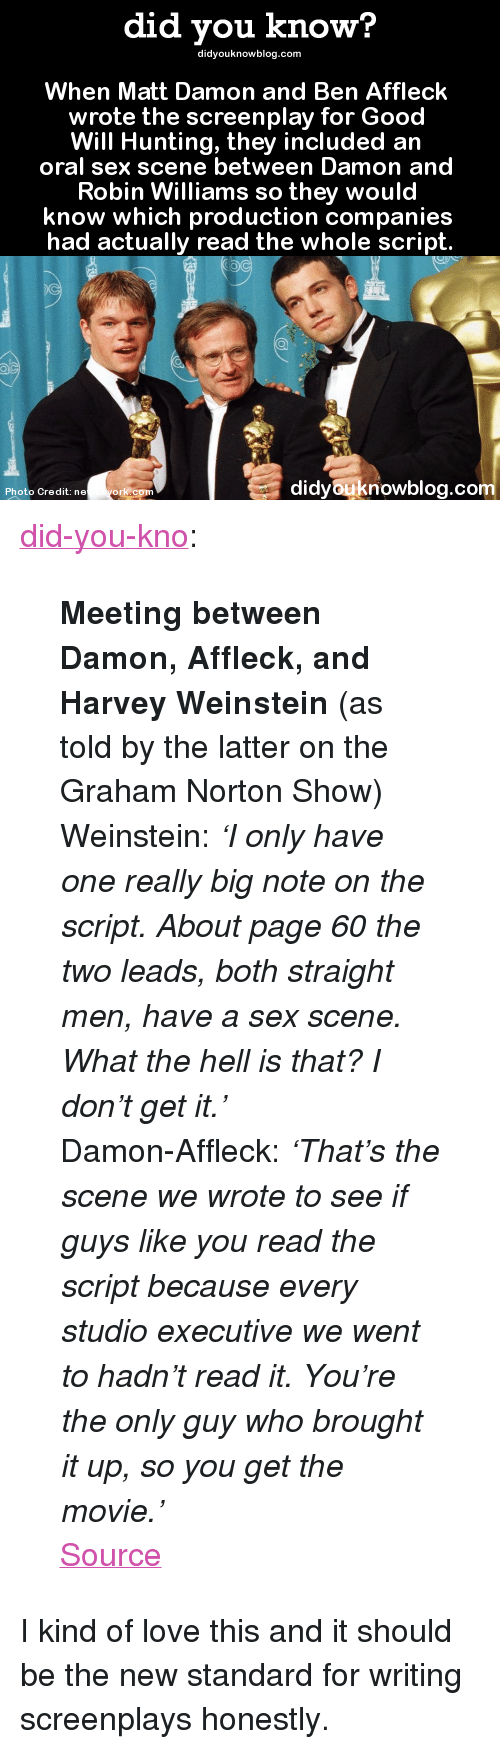 """the graham norton show: did you know?  didyouknowblog.com  When Matt Damon and Ben Affleck  wrote the screenplay for Good  Will Hunting, they included an  oral sex scene between Damon and  Robin Williams so they would  know which production companies  had actually read the whole script.  didyouknowblog.co  Photo Credit: ne  ork co <p><a class=""""tumblr_blog"""" href=""""http://did-you-kno.tumblr.com/post/146682595204"""">did-you-kno</a>:</p> <blockquote> <p><b>Meeting between Damon, Affleck, and Harvey Weinstein</b> (as told by the latter on the Graham Norton Show)<br/></p> <p>Weinstein:<i> 'I only have one really big note on the script. About page 60 the two leads, both straight men, have a sex scene. What the hell is that? I don't get it.'</i></p> <p>Damon-Affleck: <i>'That's the scene we wrote to see if guys like you read the script because every studio executive we went to hadn't read it. You're the only guy who brought it up, so you get the movie.'</i></p>  <p><a href=""""http://t.umblr.com/redirect?z=http%3A%2F%2Fwww.news.com.au%2Fentertainment%2Fmovies%2Fmatt-damon-and-ben-affleck-hid-a-secret-oral-sex-scene-in-good-will-hunting%2Fstory-e6frfmvr-1227193022289&amp;t=M2ZmOWYzZDI4YmJkNzY4YjVjY2MxMjY1N2ViZmQyOTI3NmU5NDZhNyxSaFdiaDZyWA%3D%3D"""">Source</a></p> </blockquote>  <p>I kind of love this and it should be the new standard for writing screenplays honestly.</p>"""